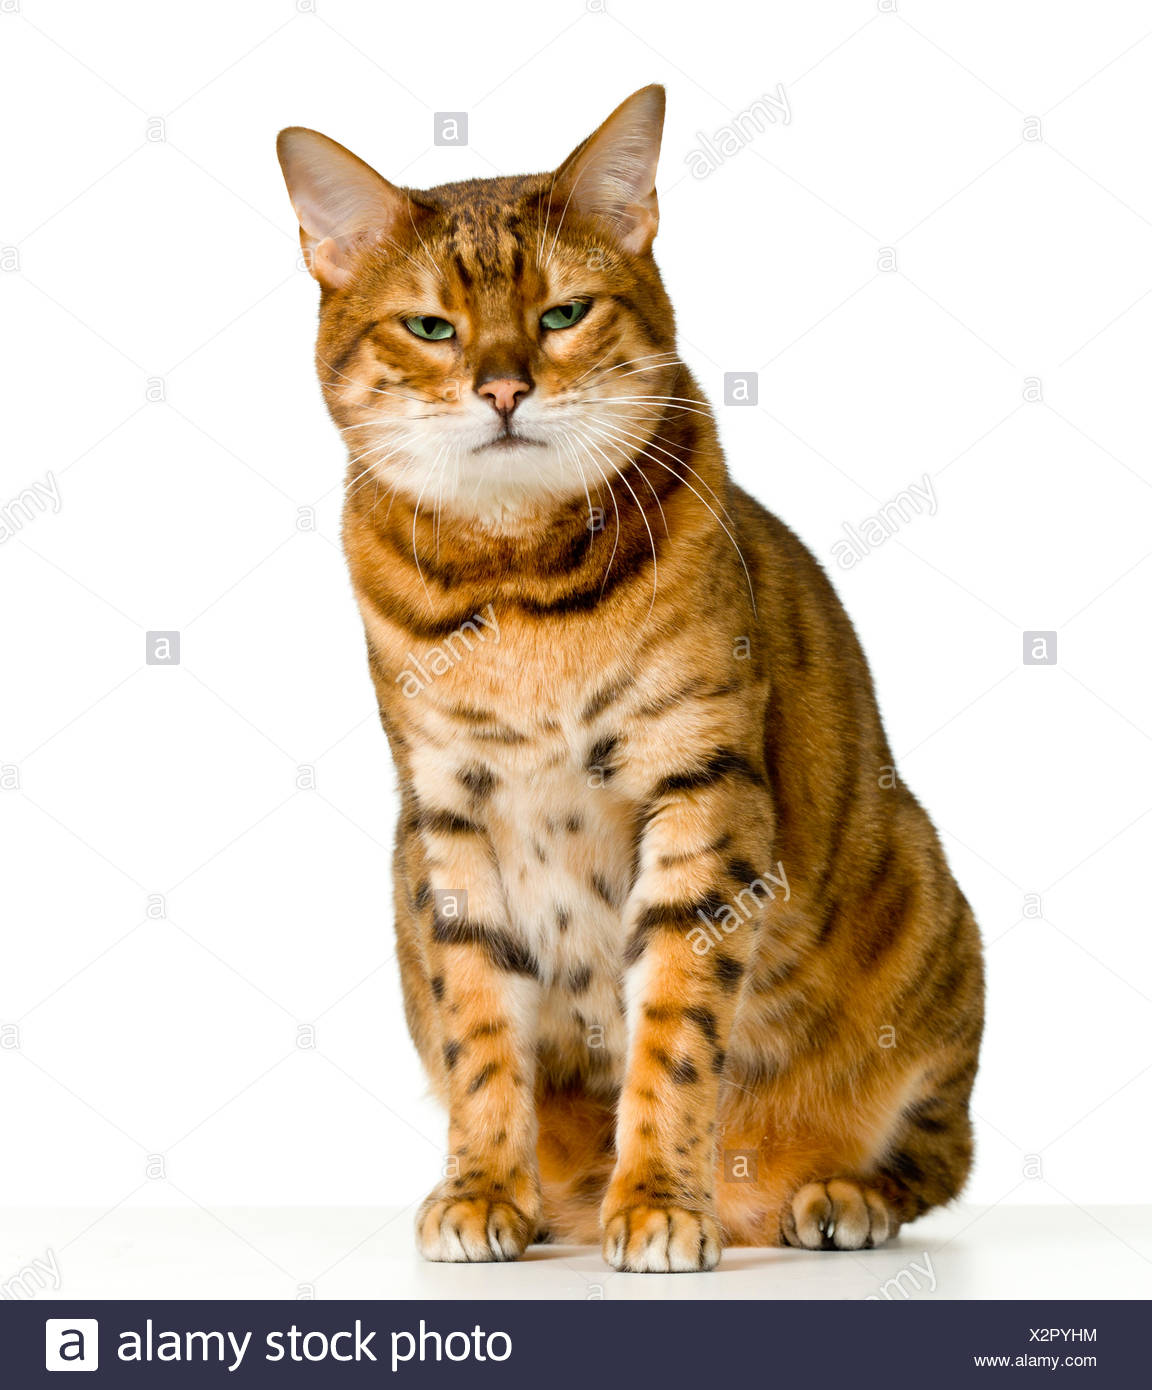 Cute Bengal kitten looks angry as it stares at the viewer - Stock Image